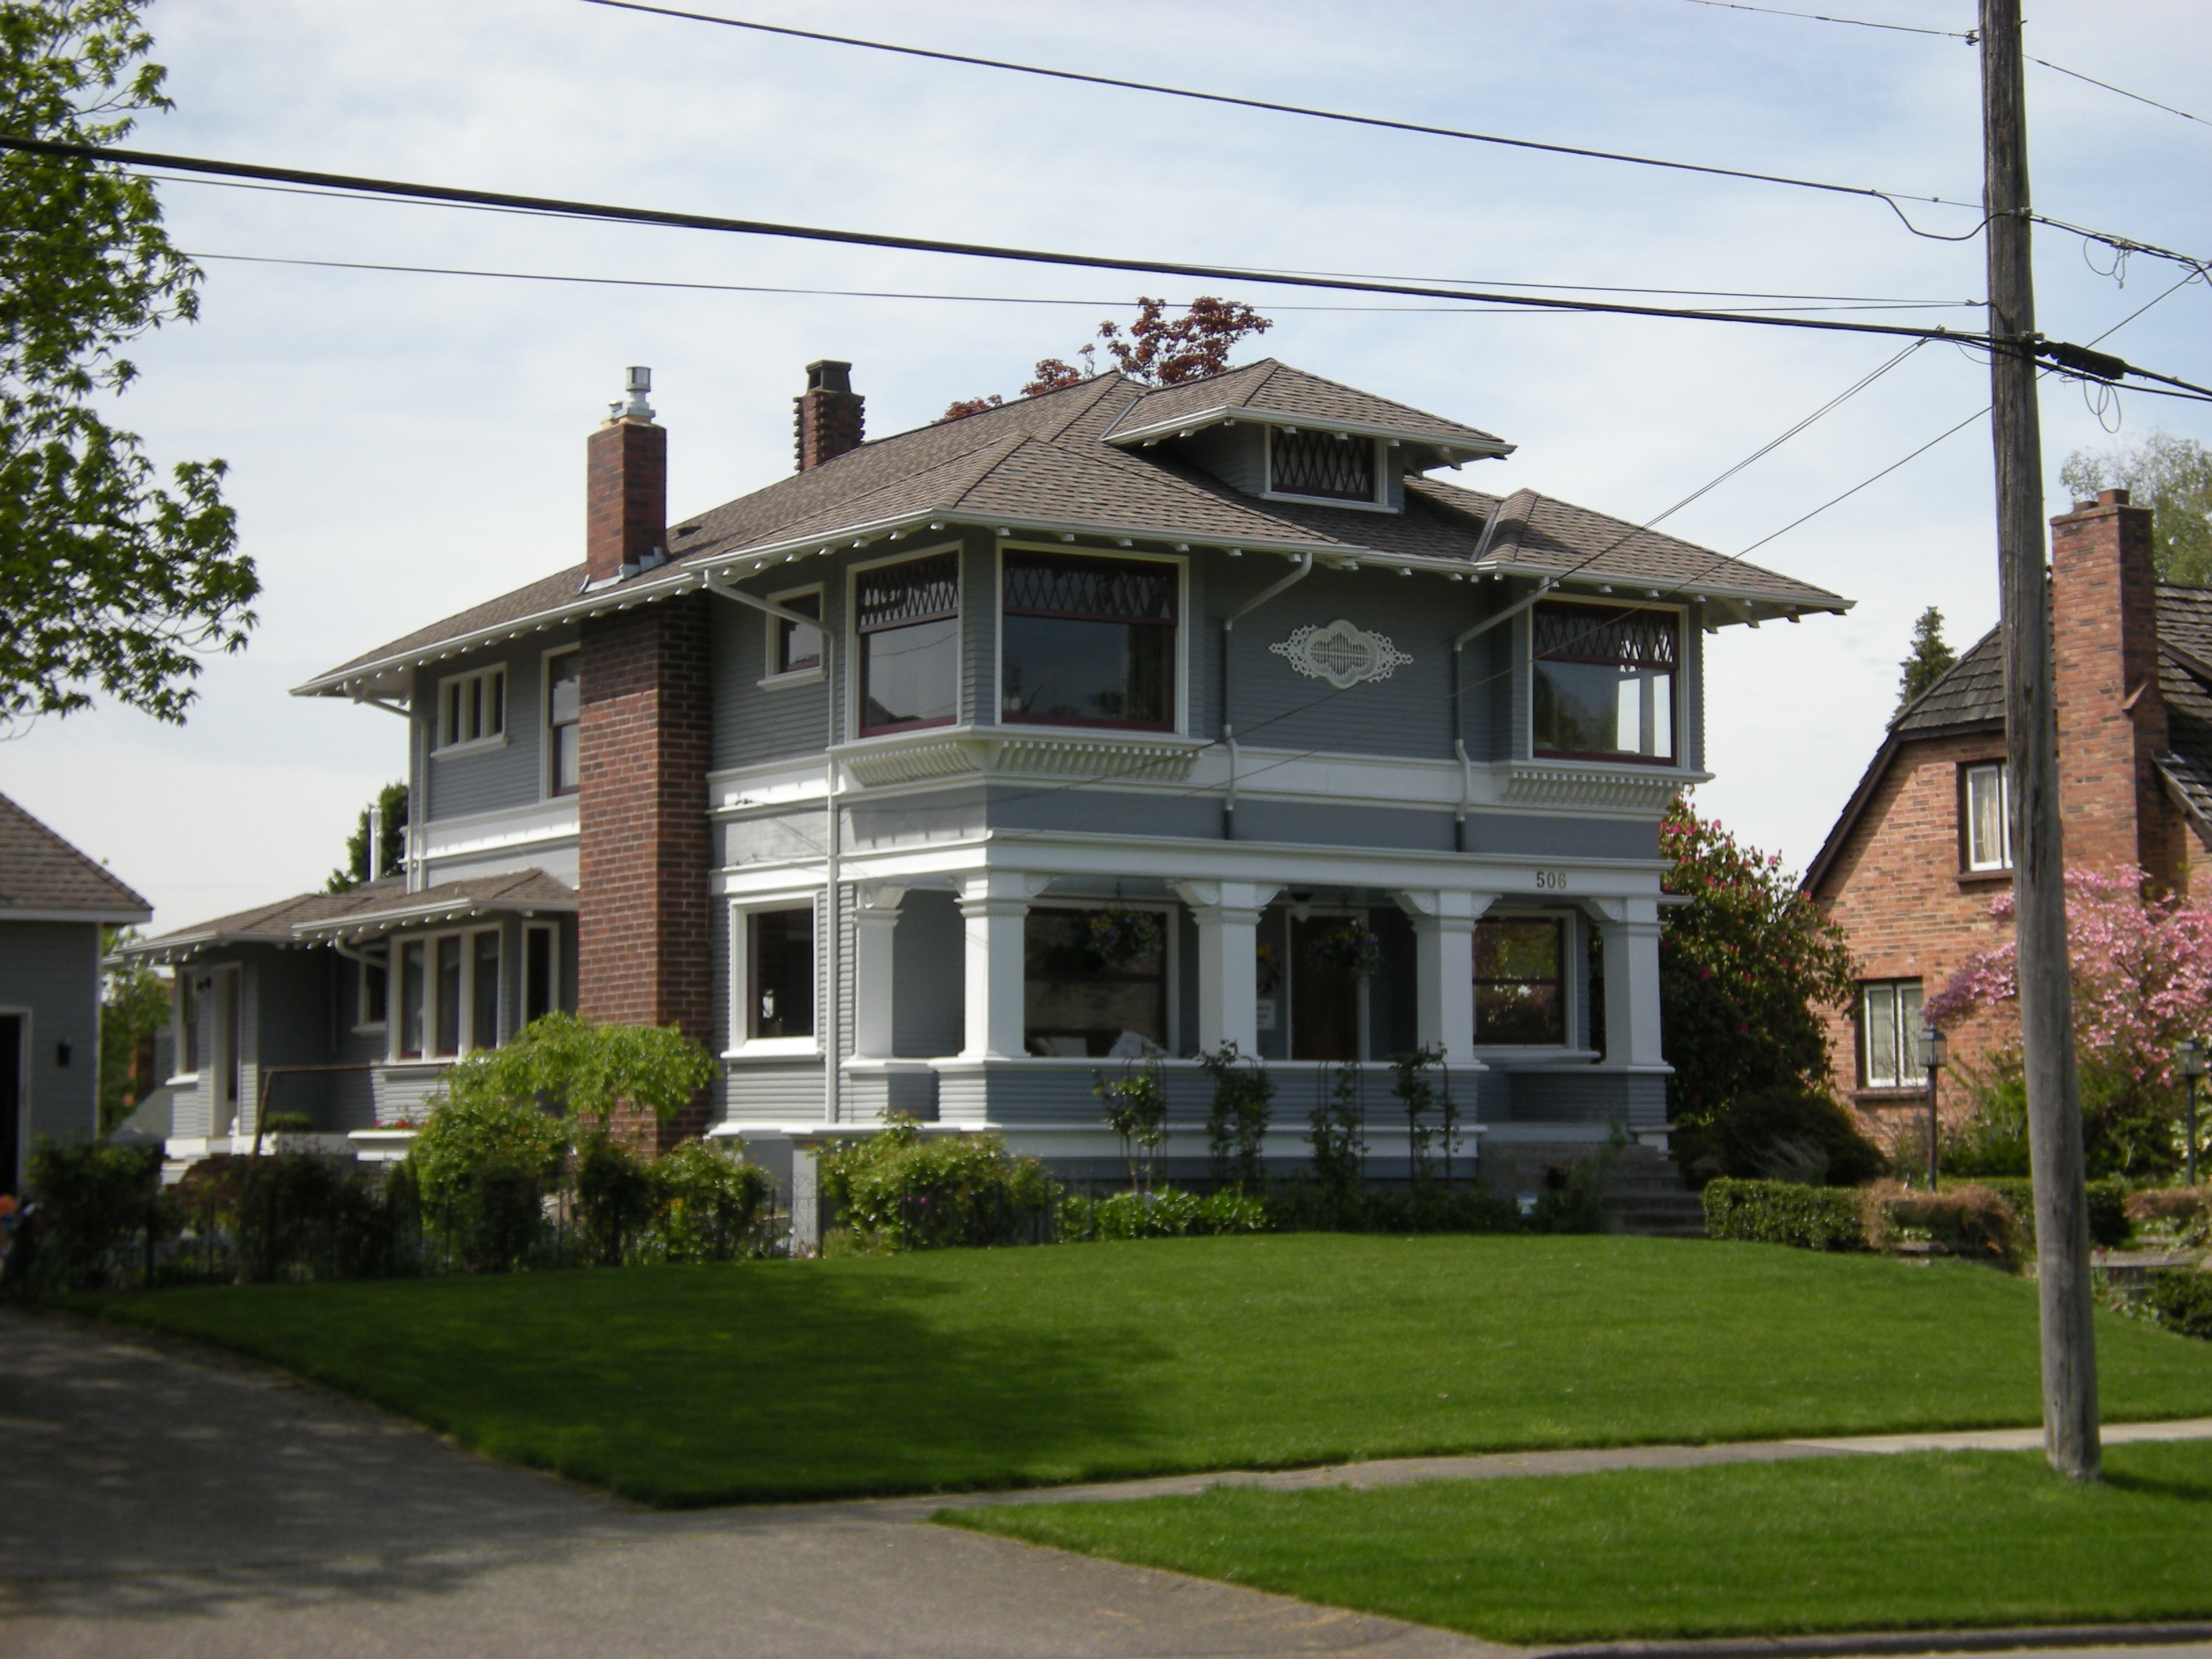 1000 images about american foursquare houses on pinterest for Foursquare home plans